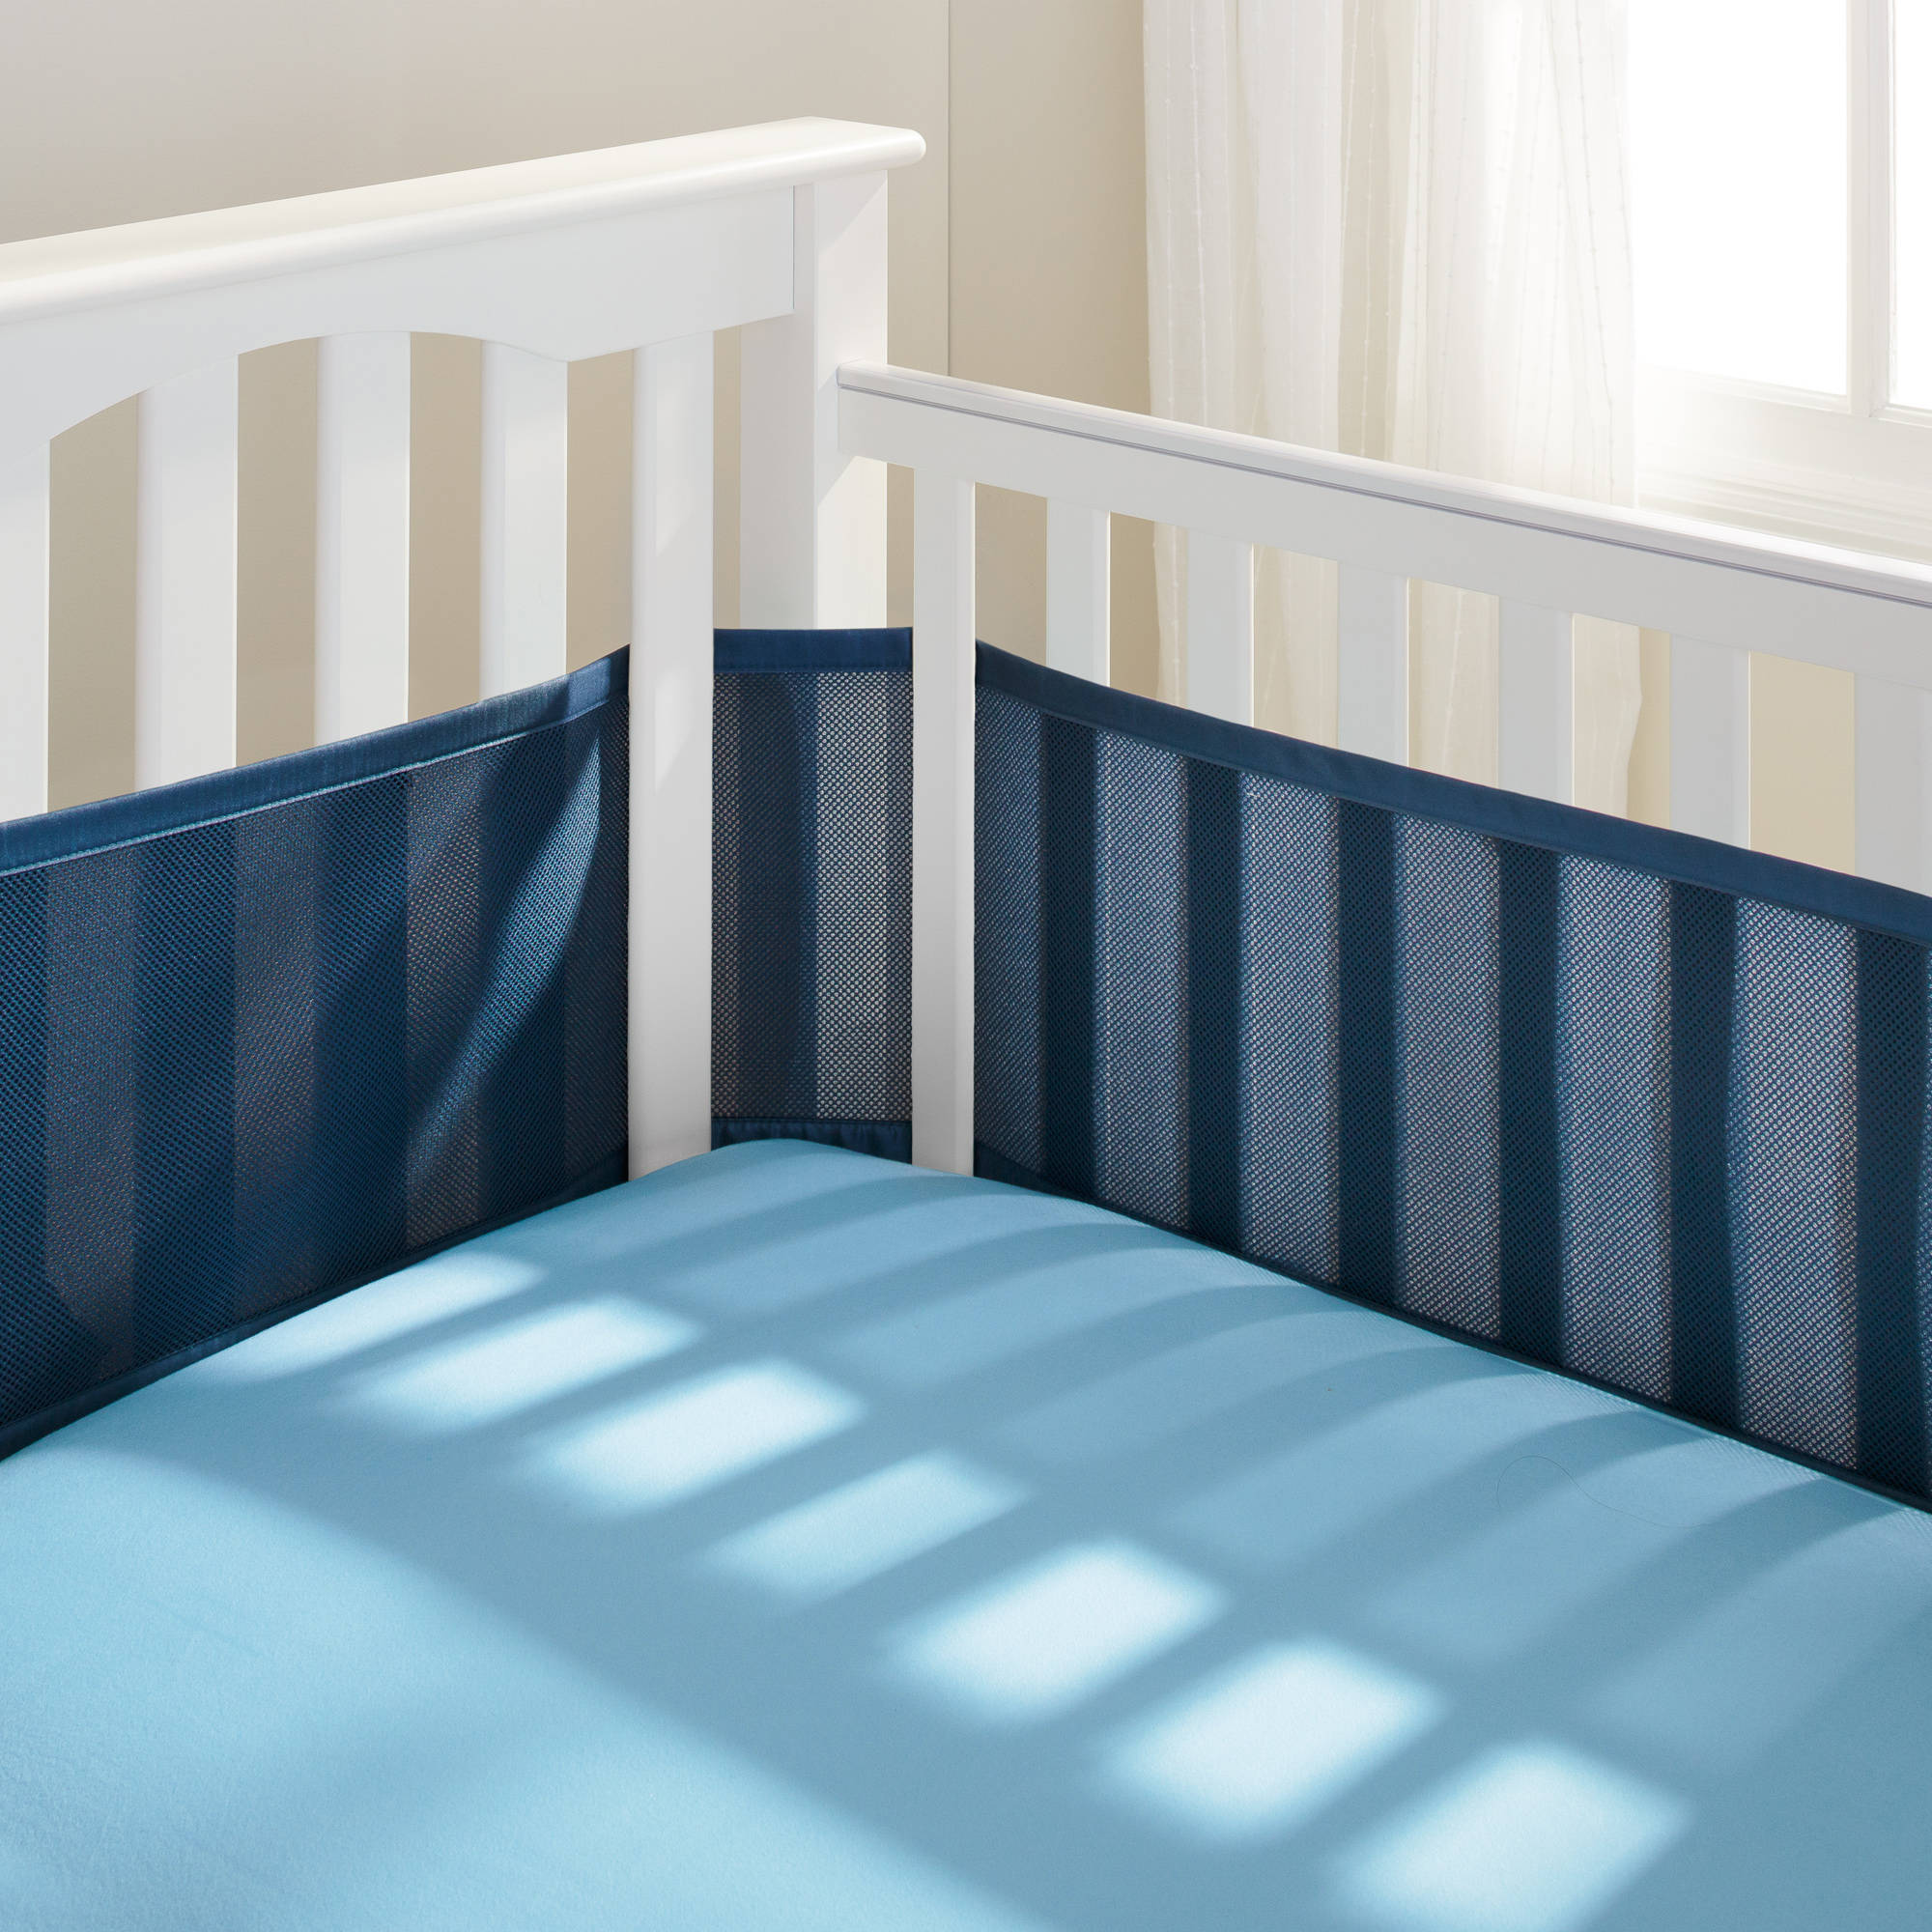 BreathableBaby - Breathable Crib Liner, Fits All Cribs, Choose Your Color